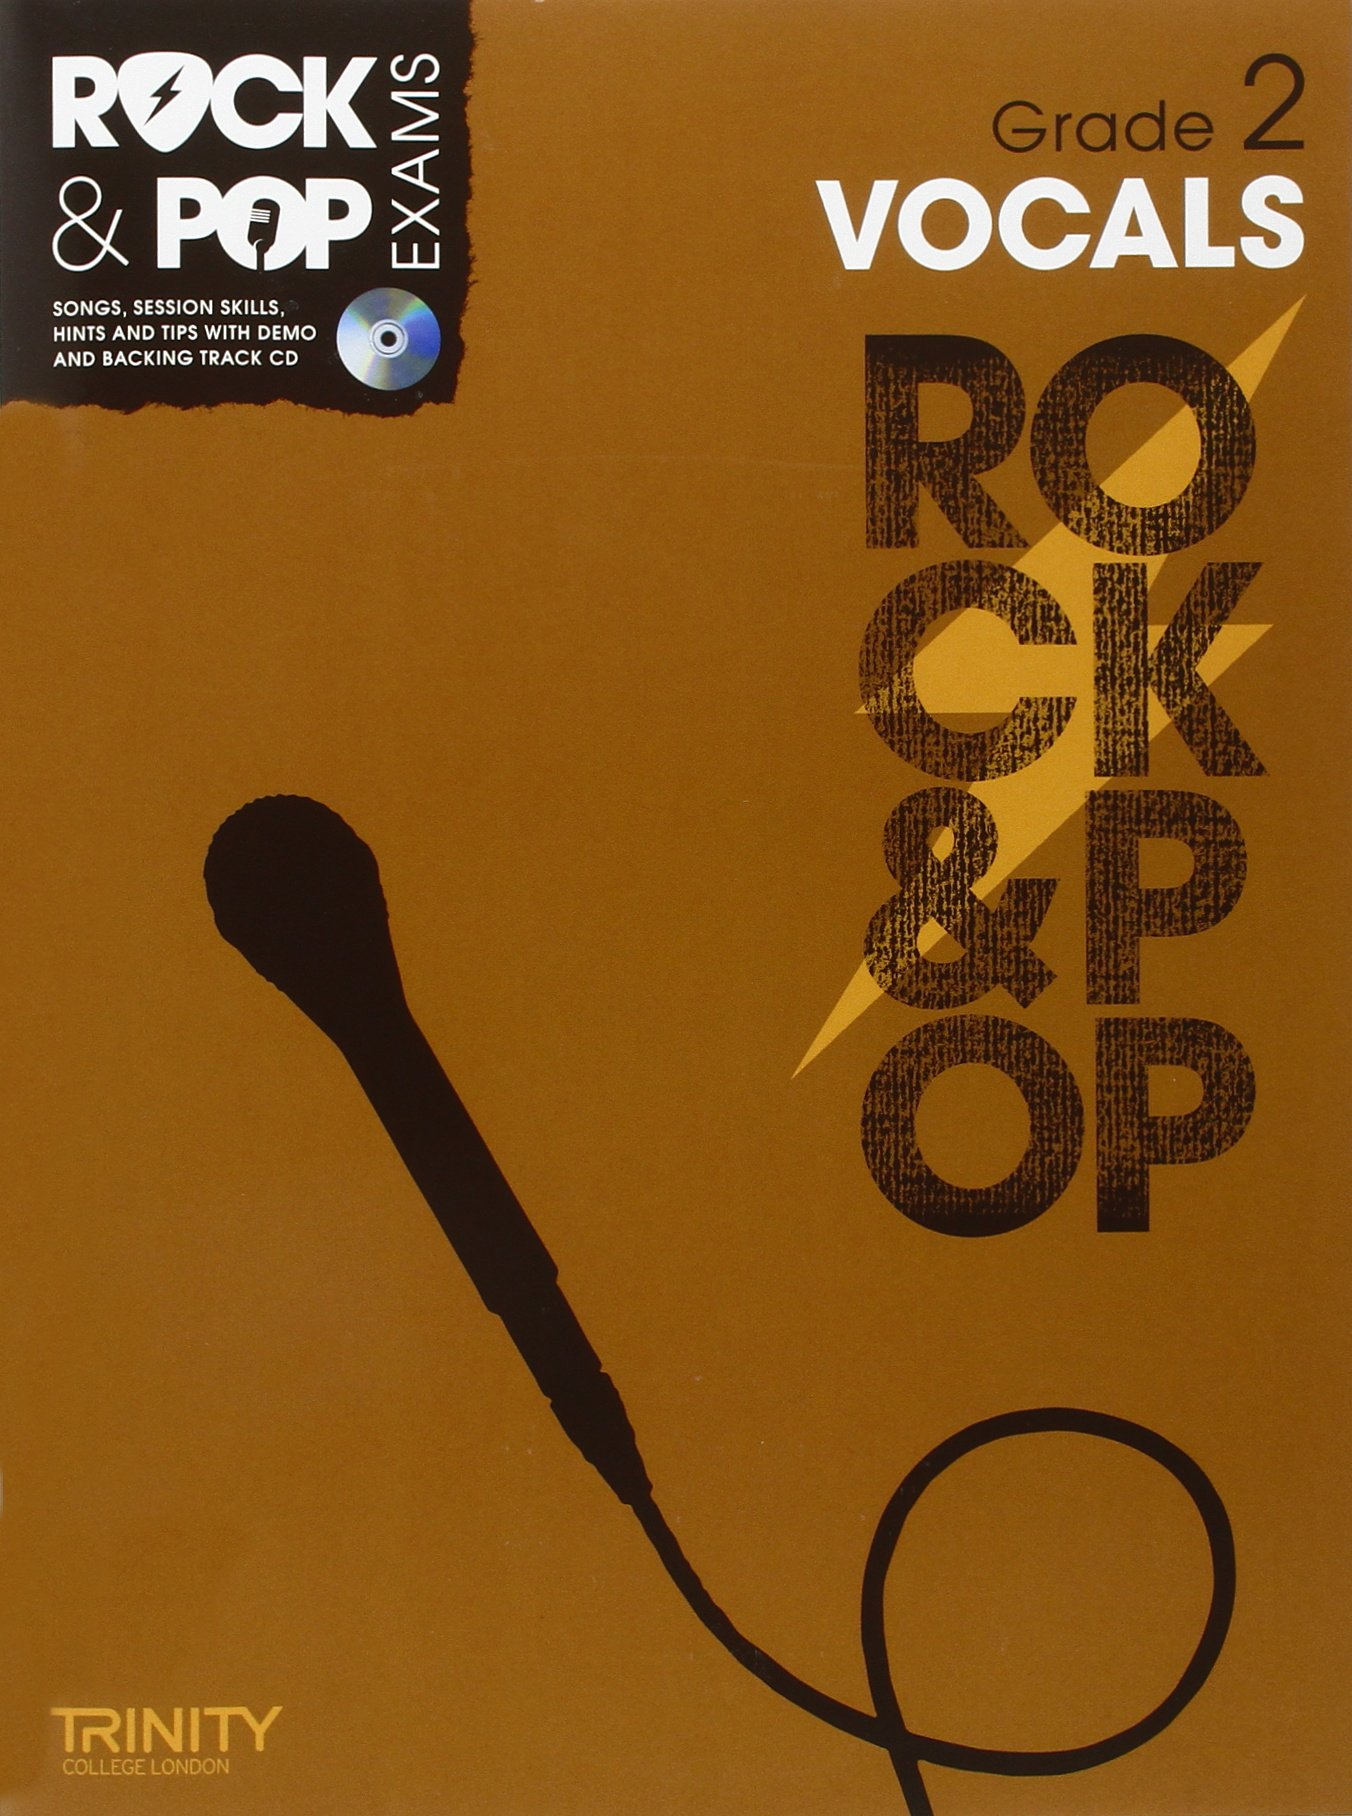 Cd Copertina flessibil Rock /& Pop Grade 2 For Singers Trinity College London